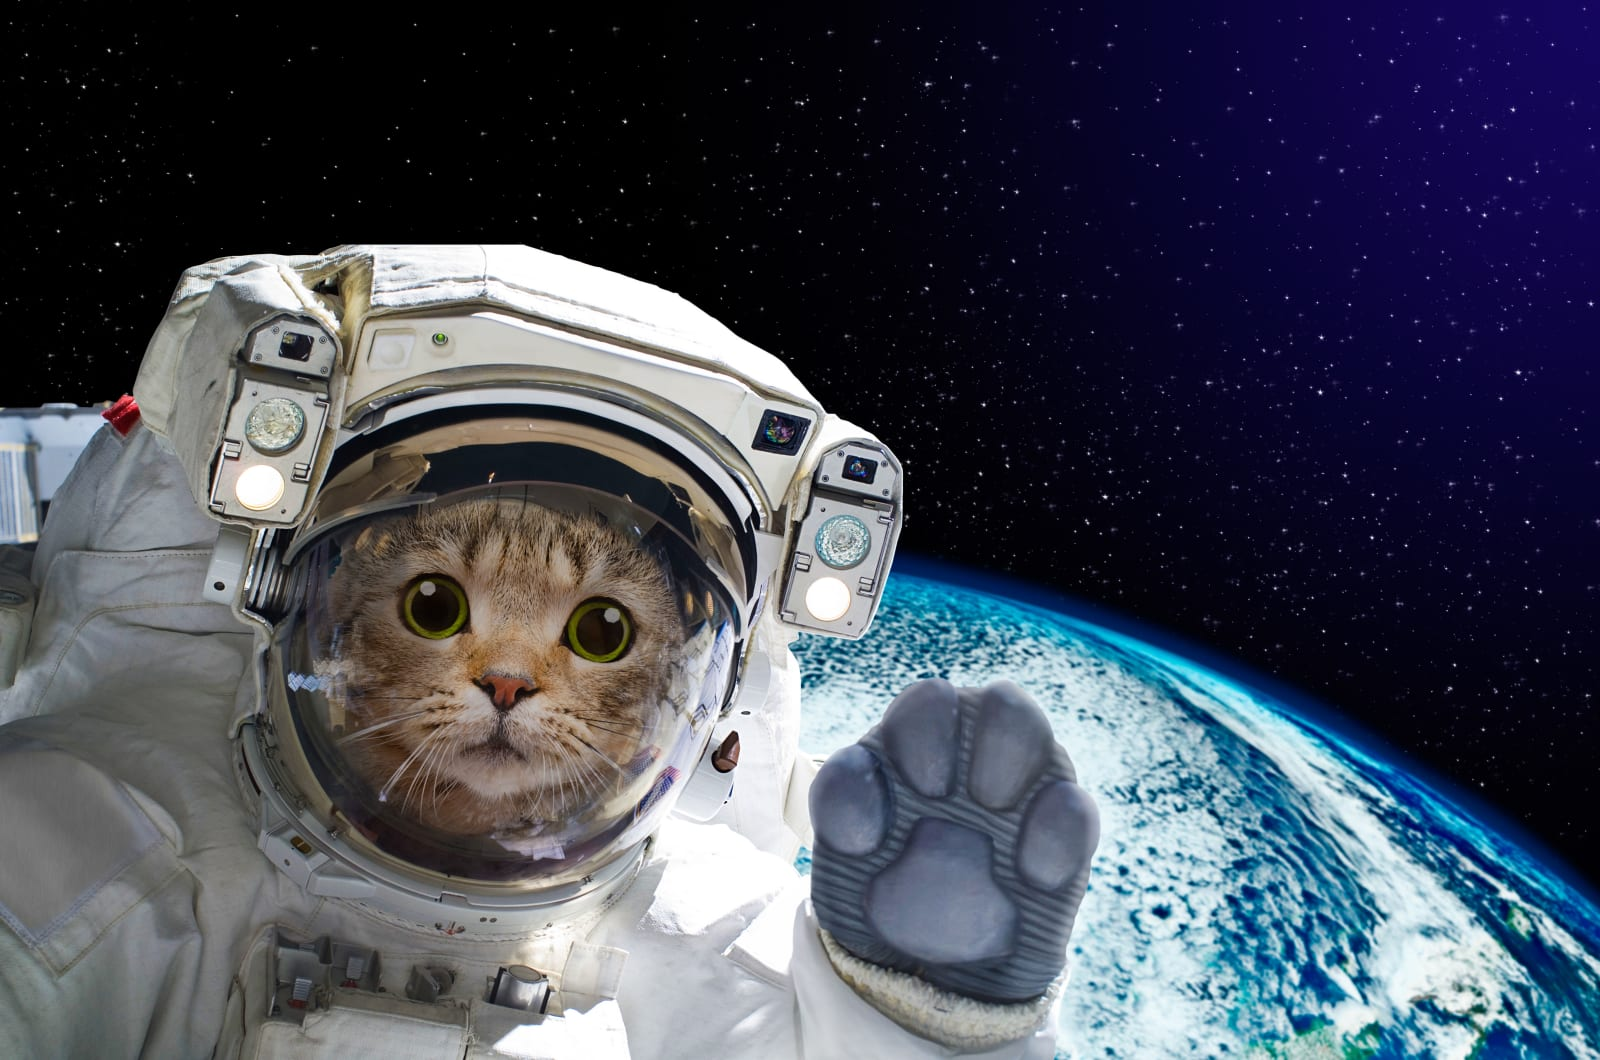 Hitting the Books: How to sling a cat through interstellar space